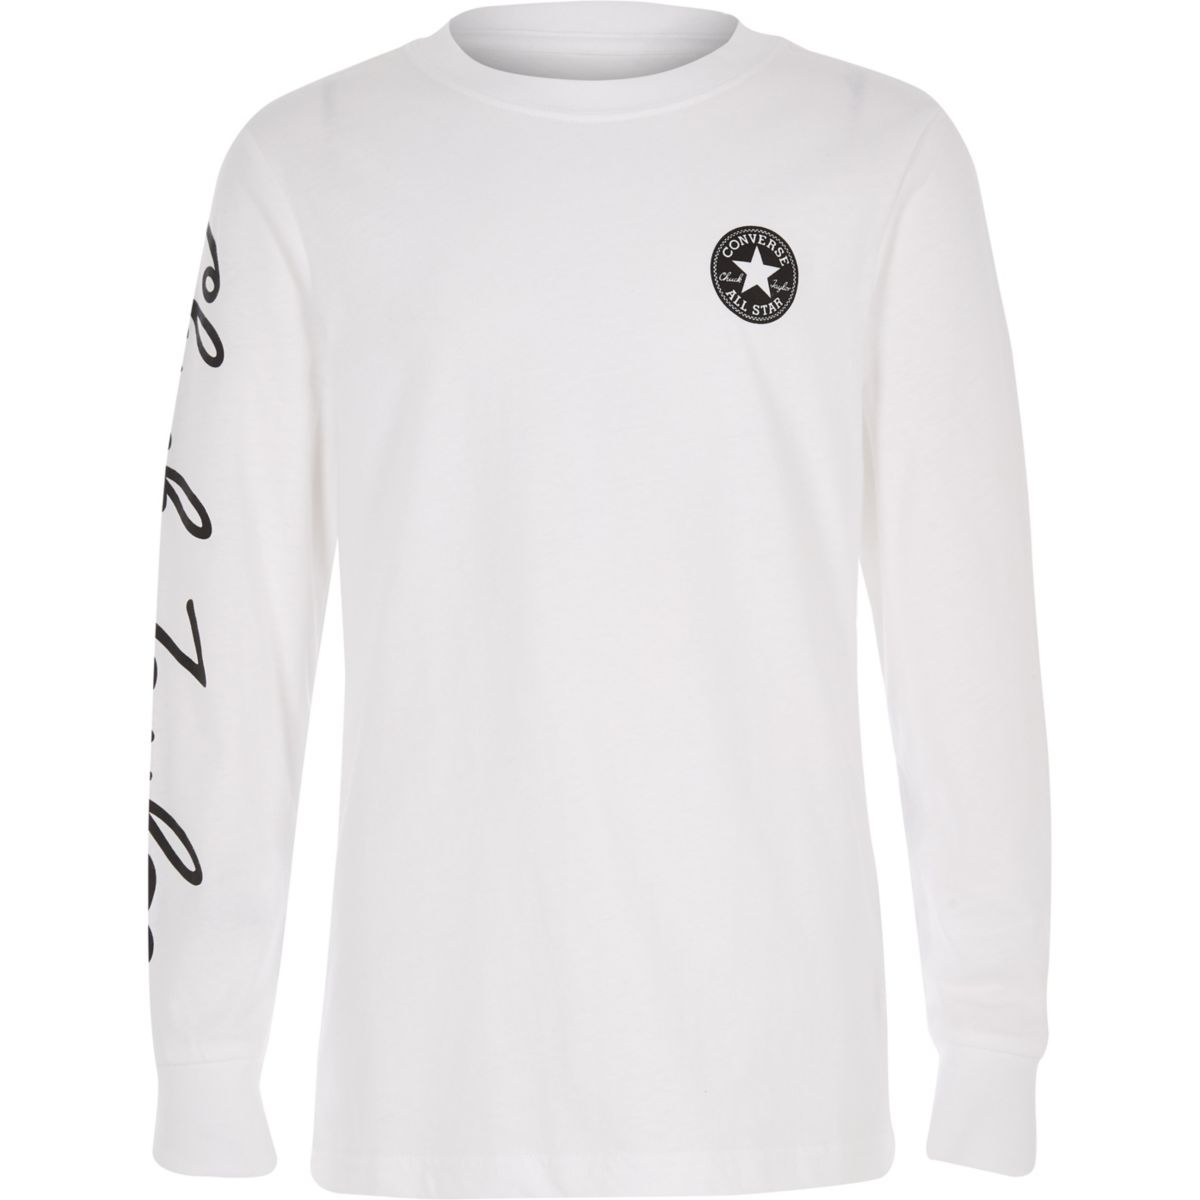 Boys Converse white long sleeve T-shirt